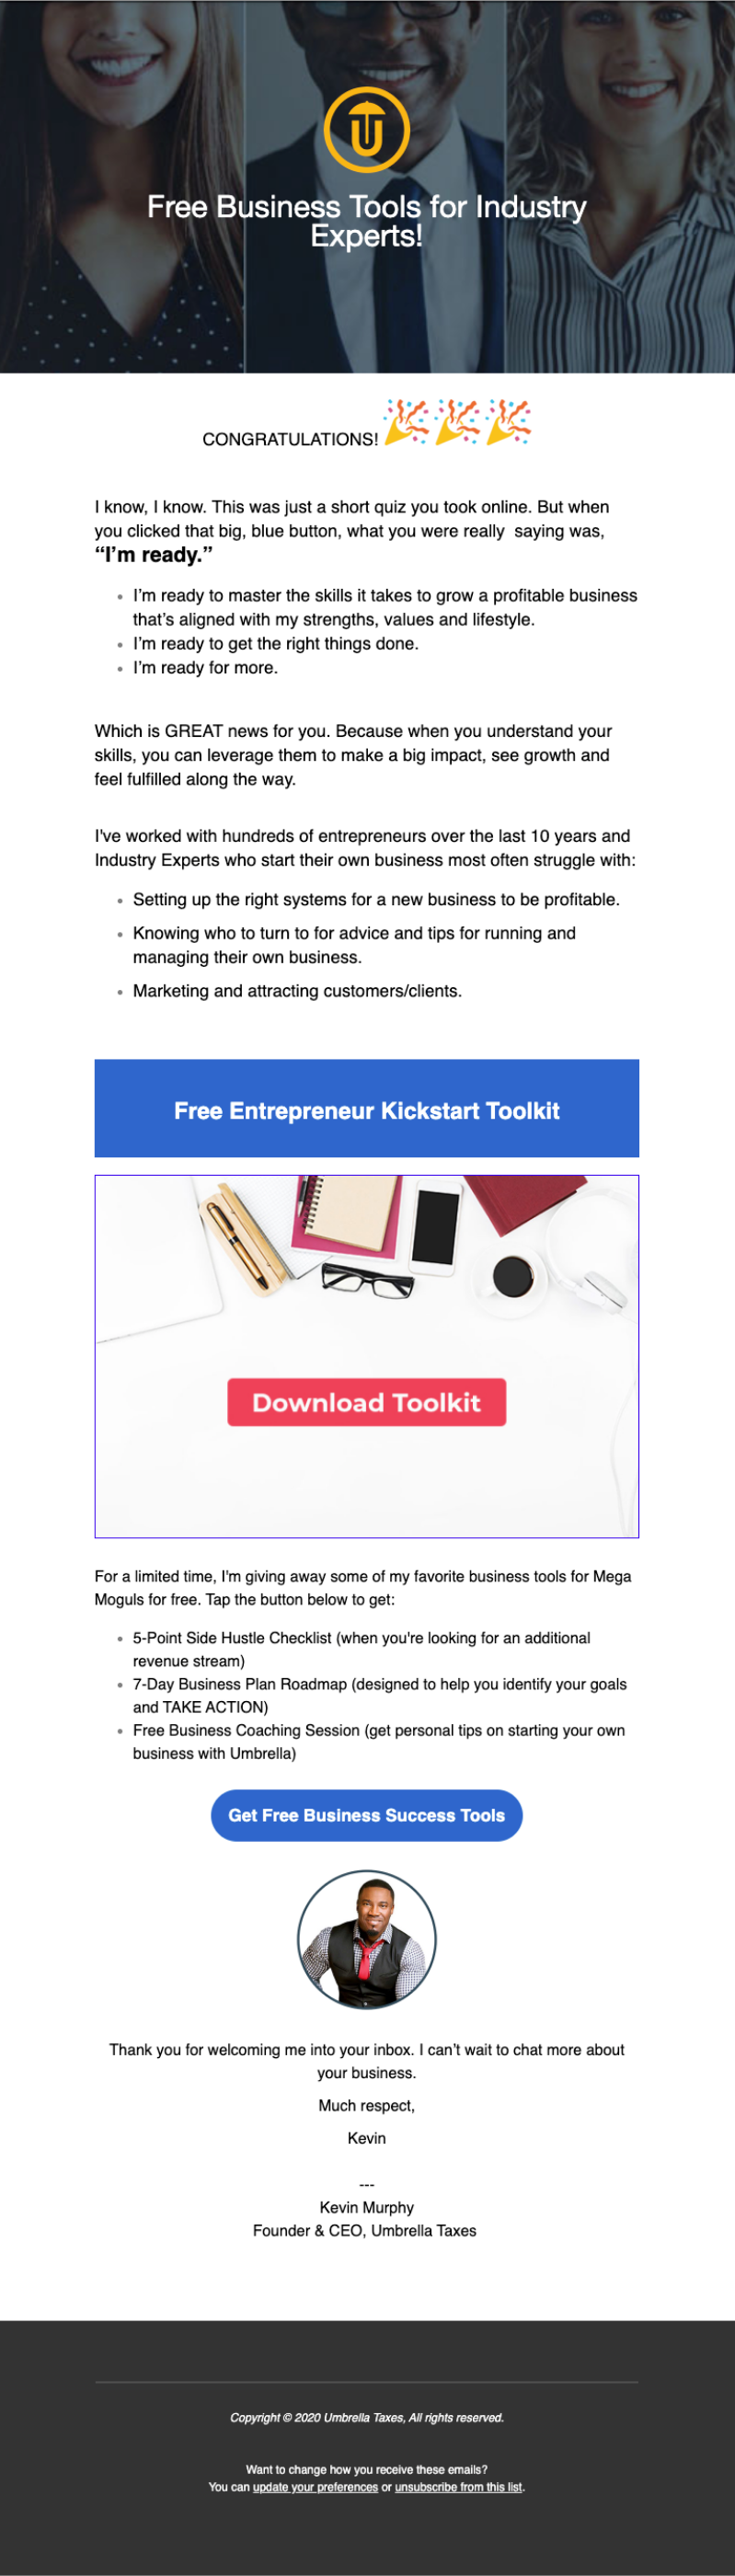 Image of newsletter for free business tools for industry leaders